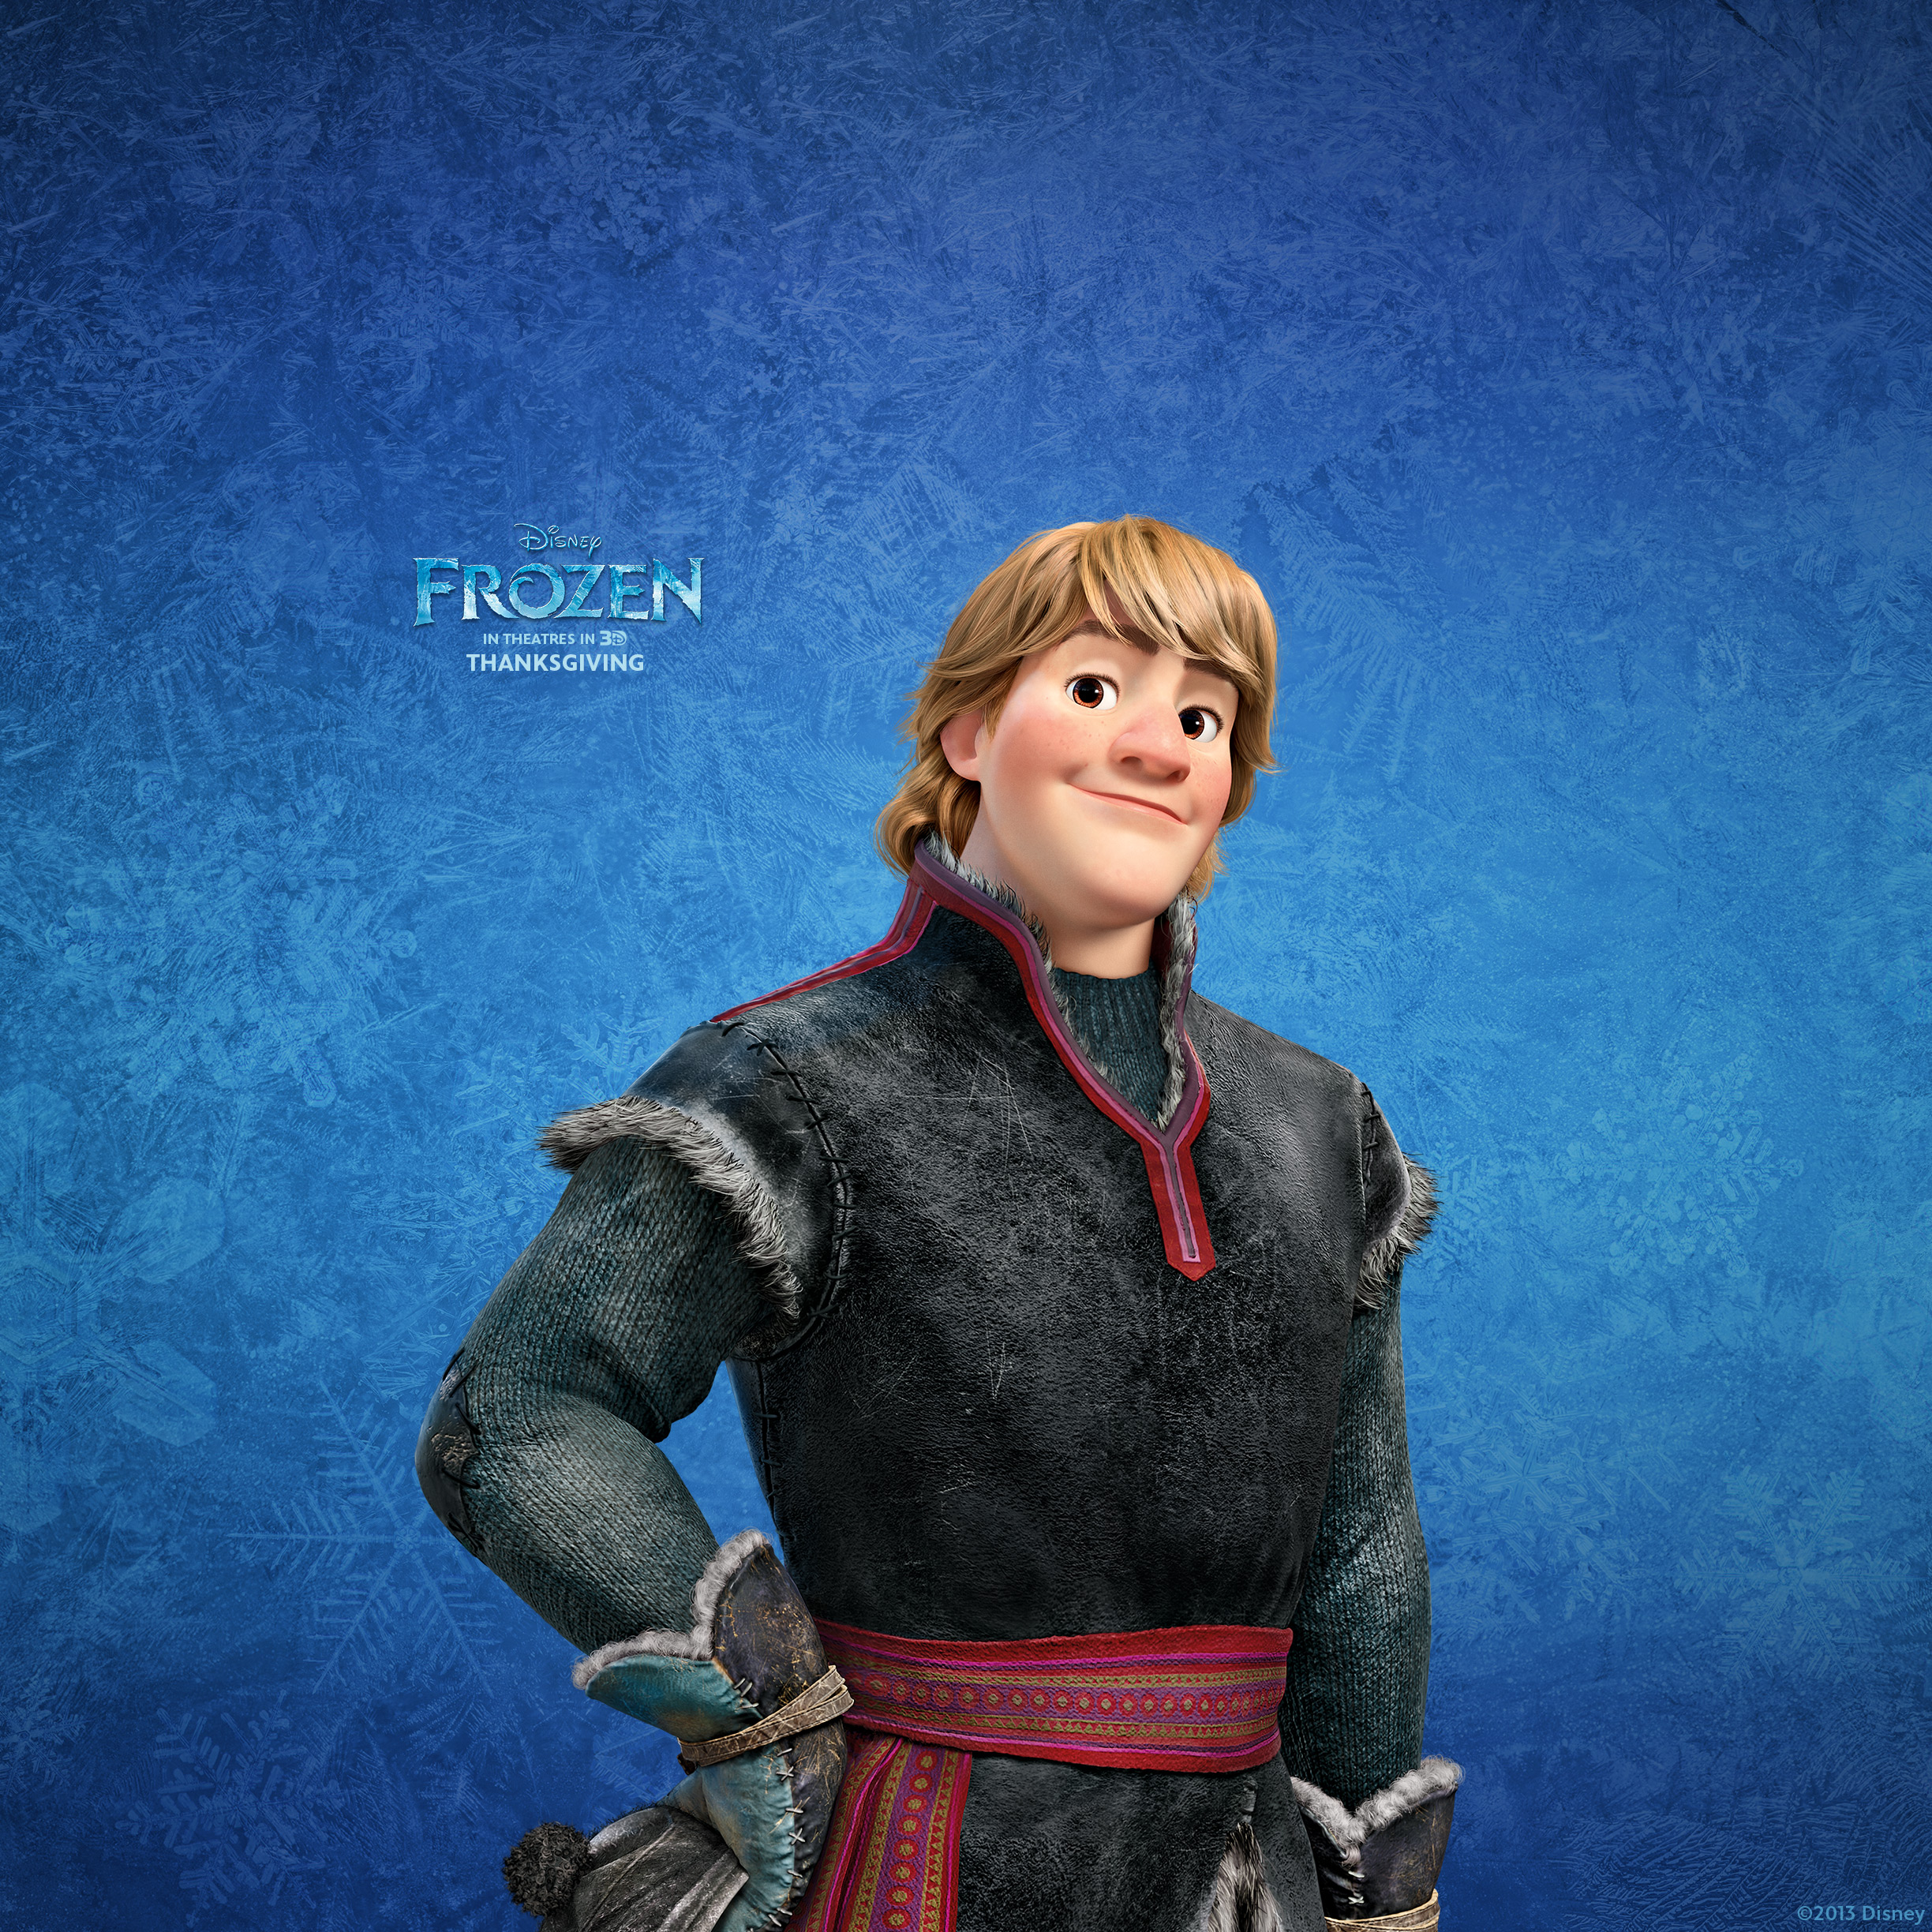 Frozen Images Kristoff Hd Wallpaper And Background Photos